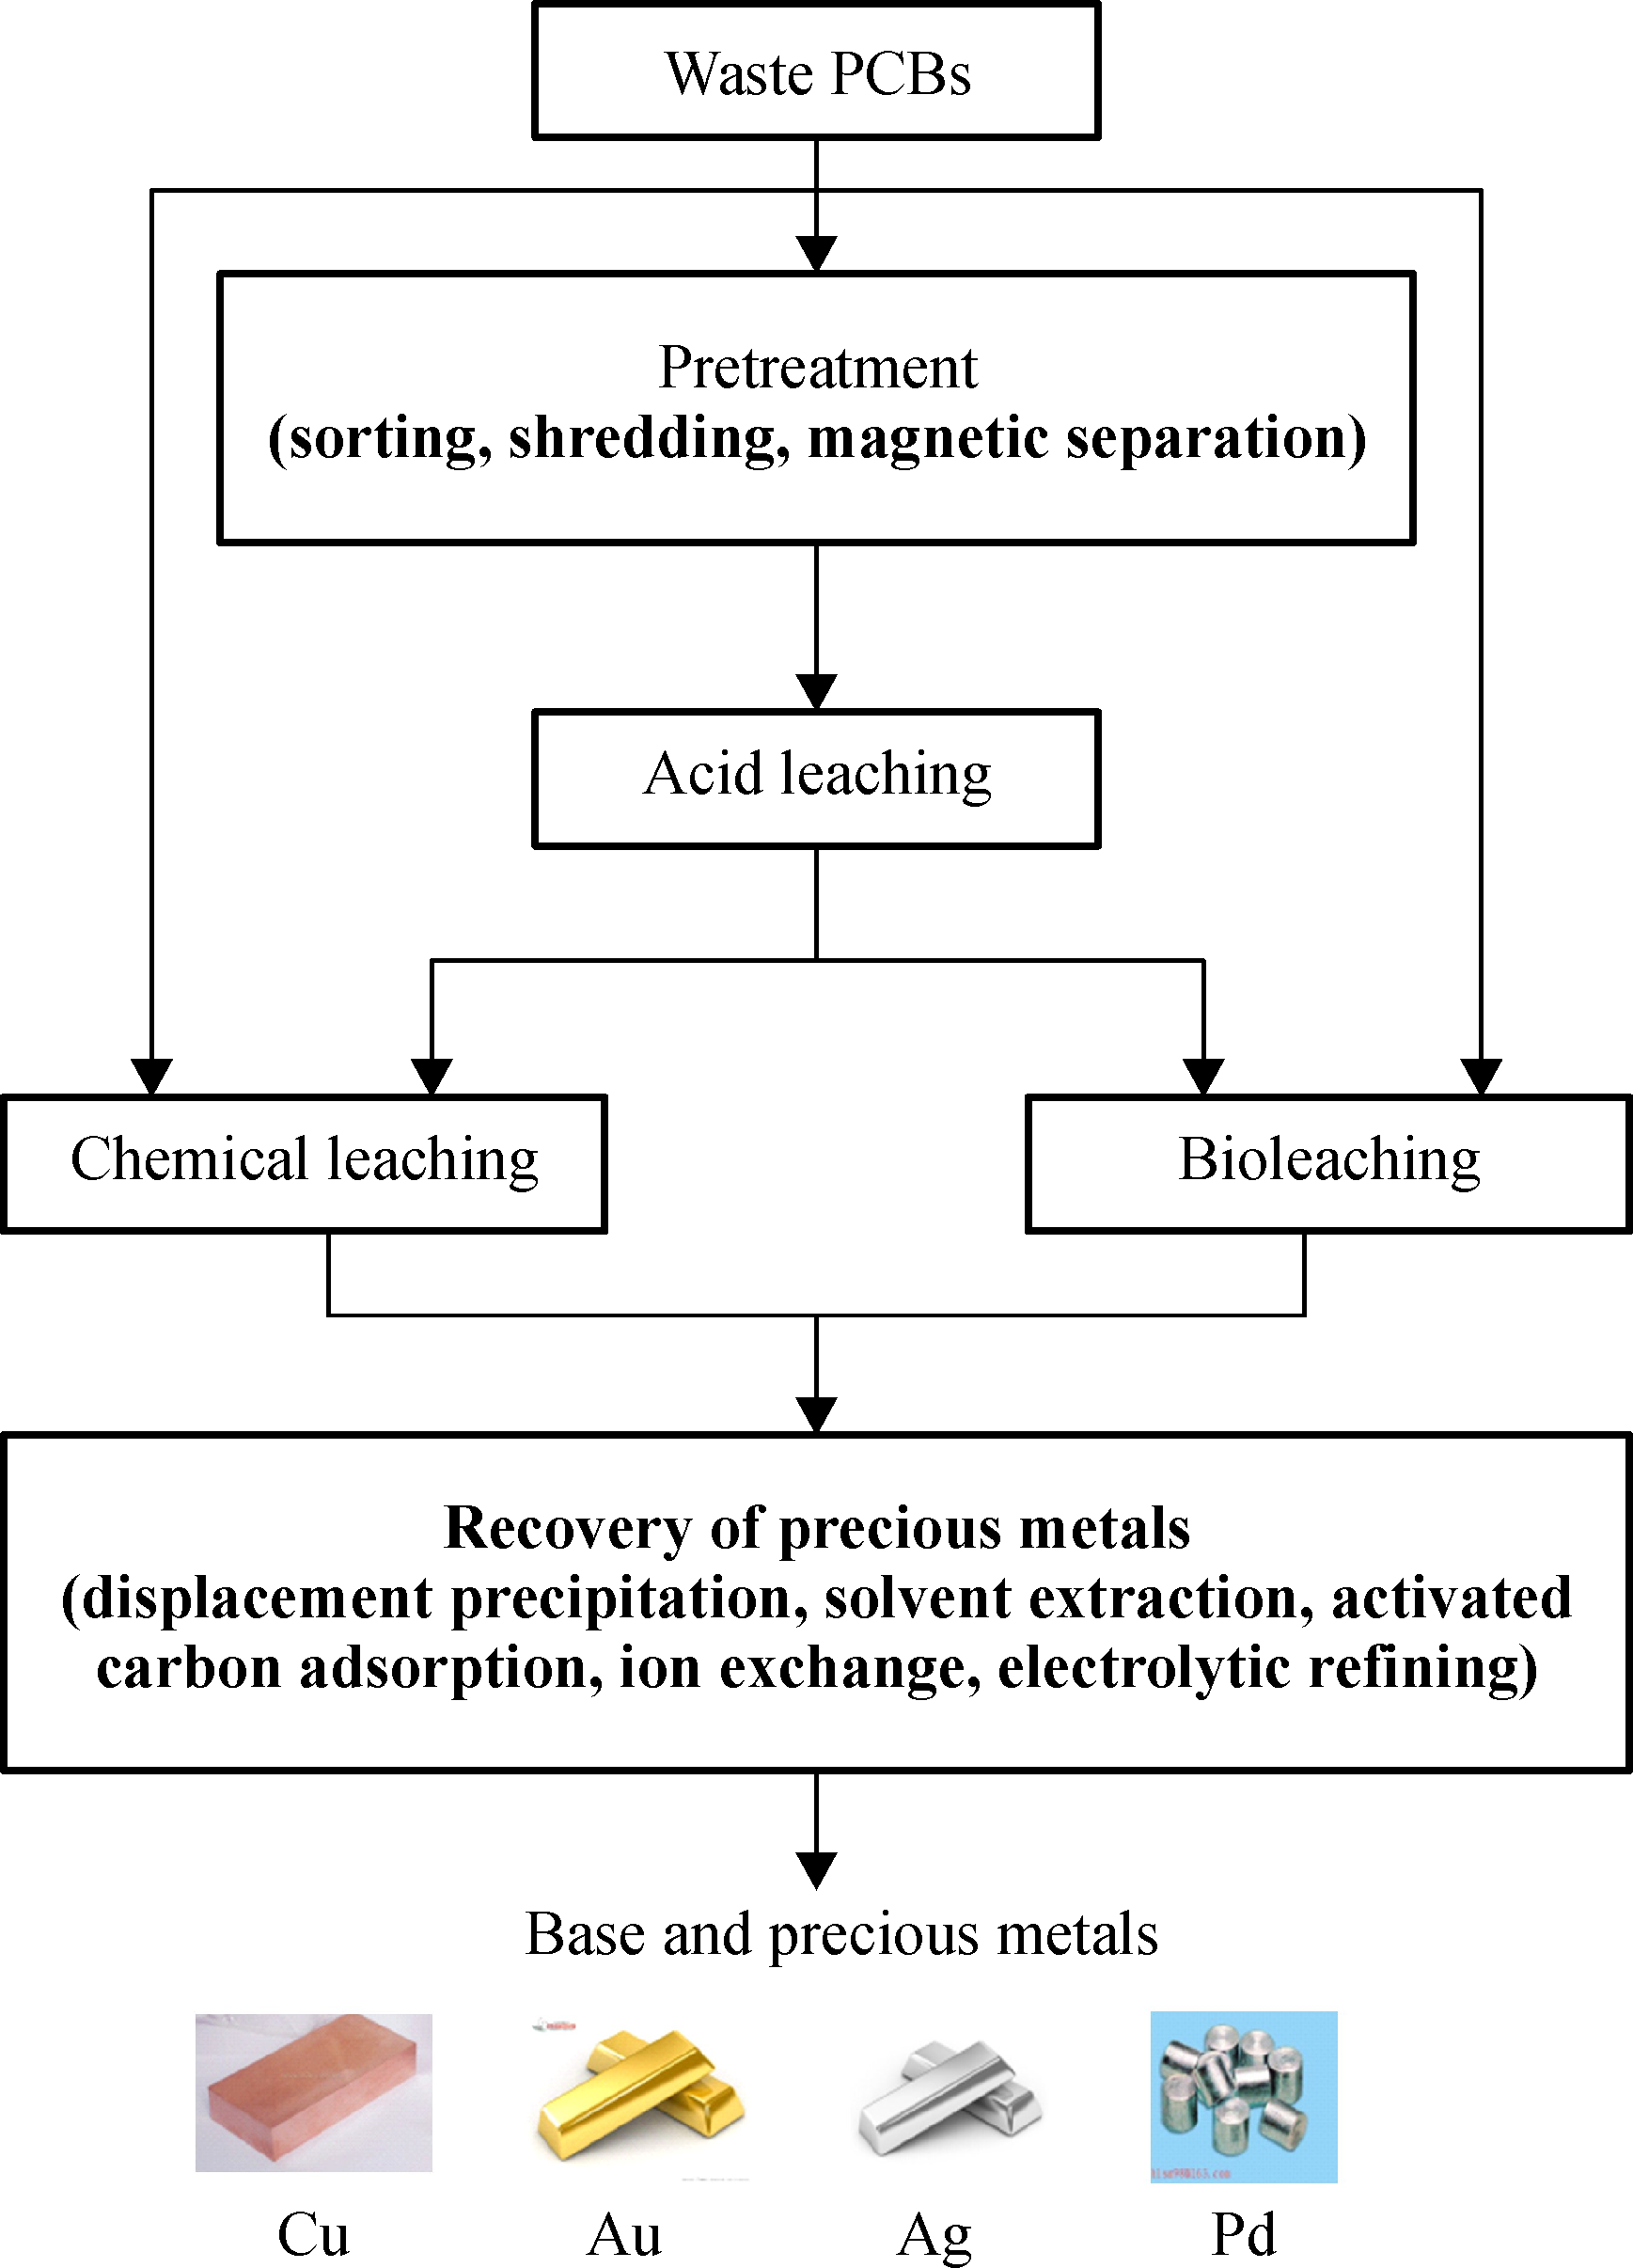 A critical review on the recycling of copper and precious